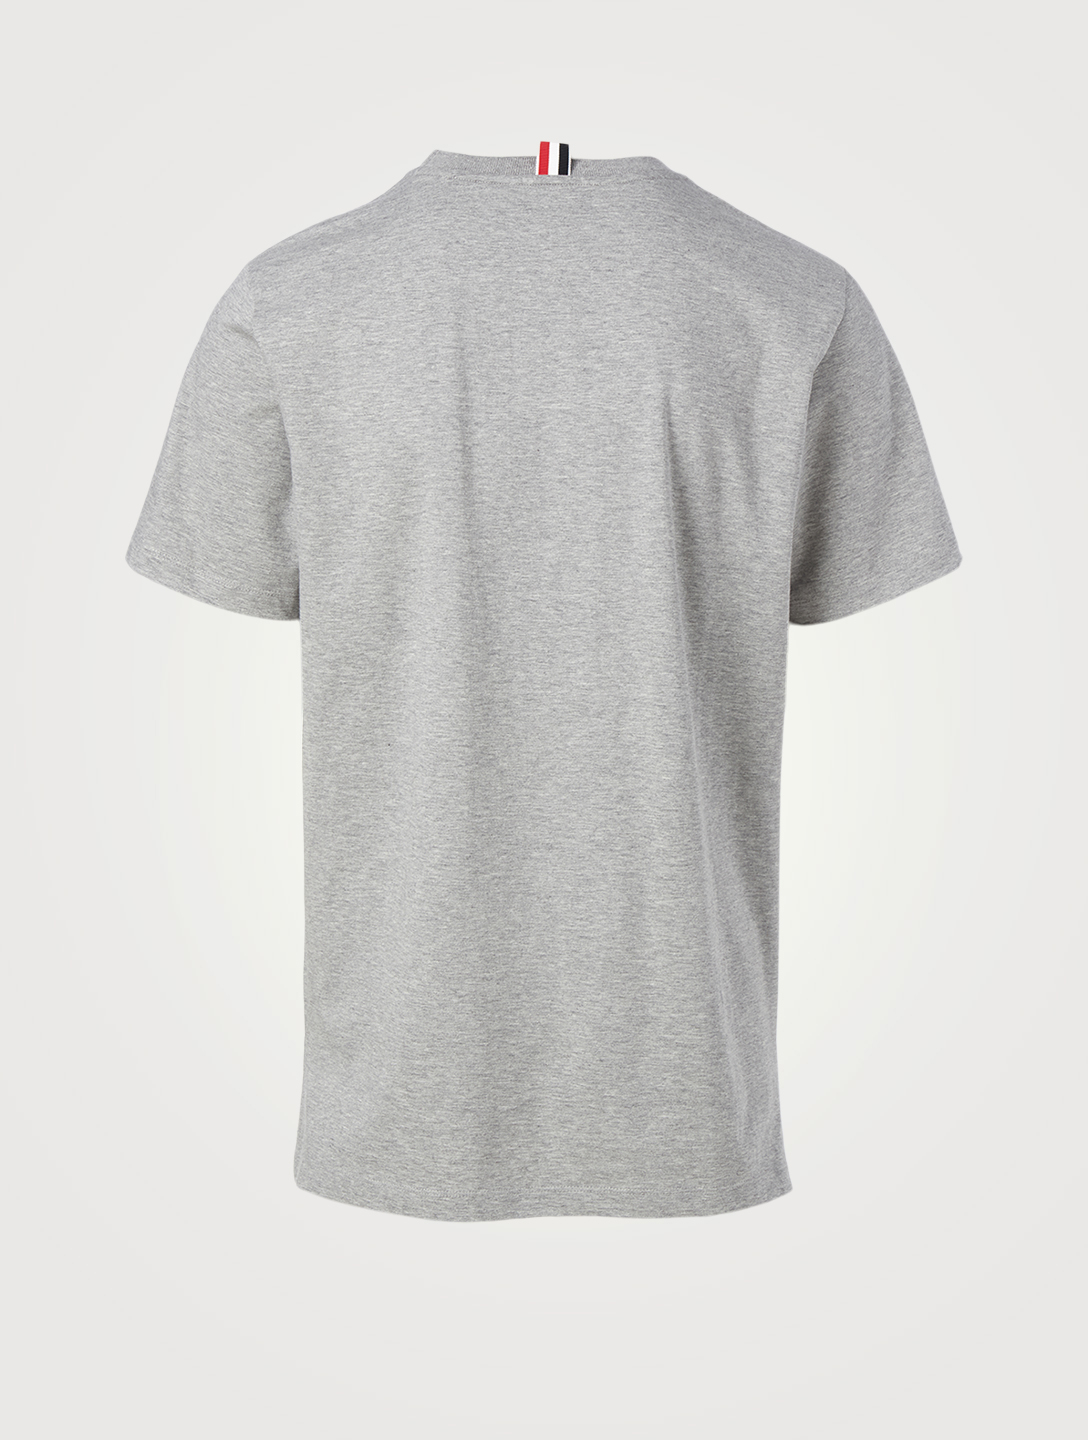 THOM BROWNE Crewneck T-Shirt With Side Slits Men's Grey